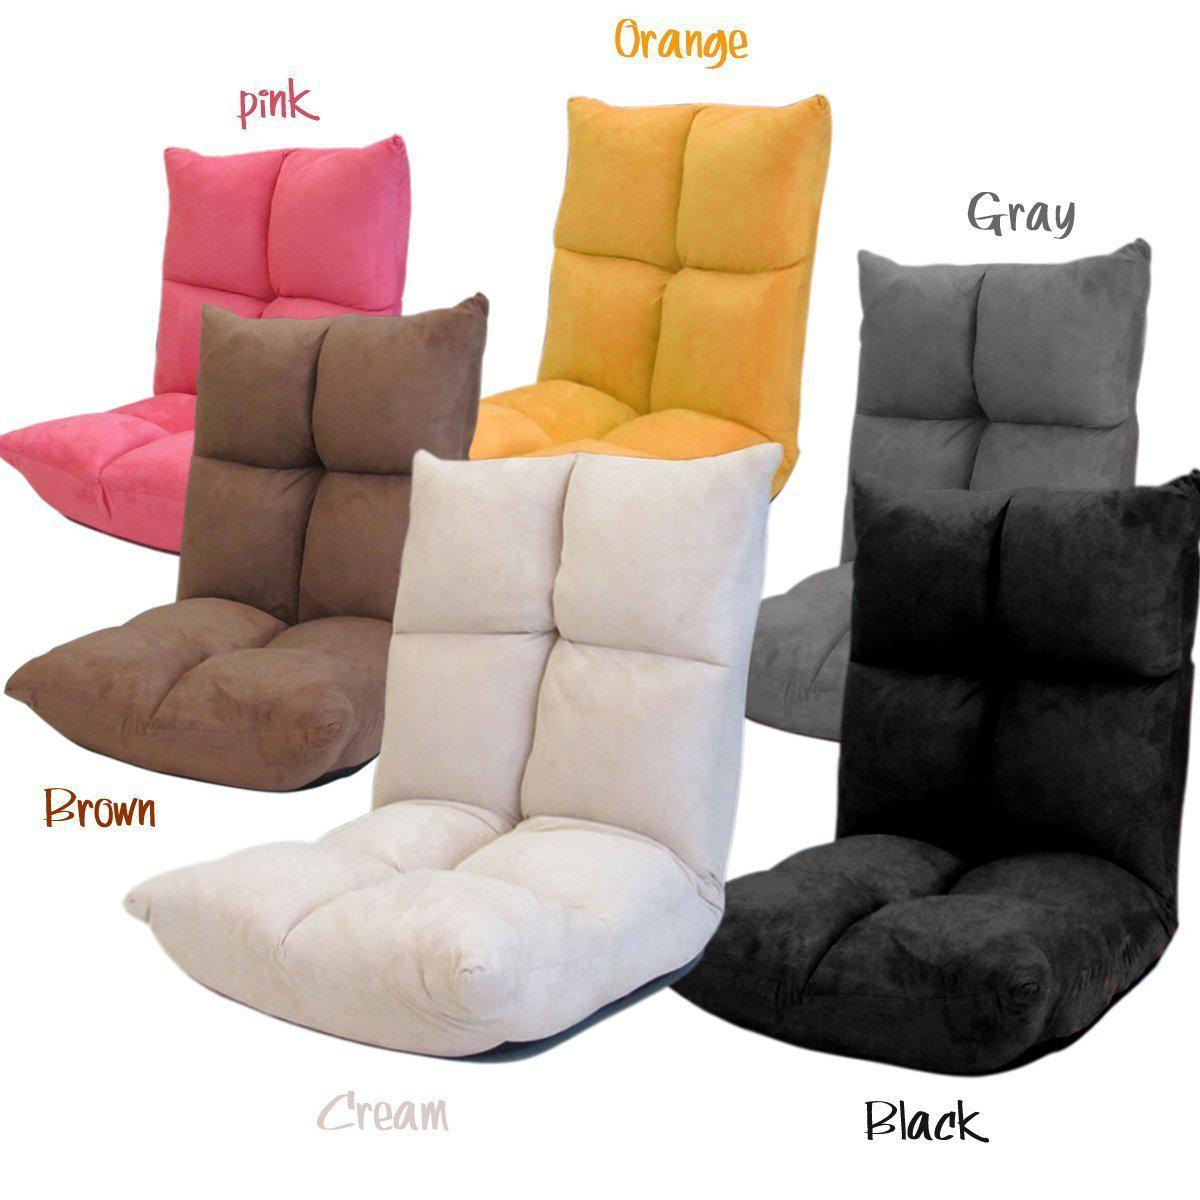 2017 Folding Chairs Sofa Set Leather Sofa Lounge Sofa Chairs